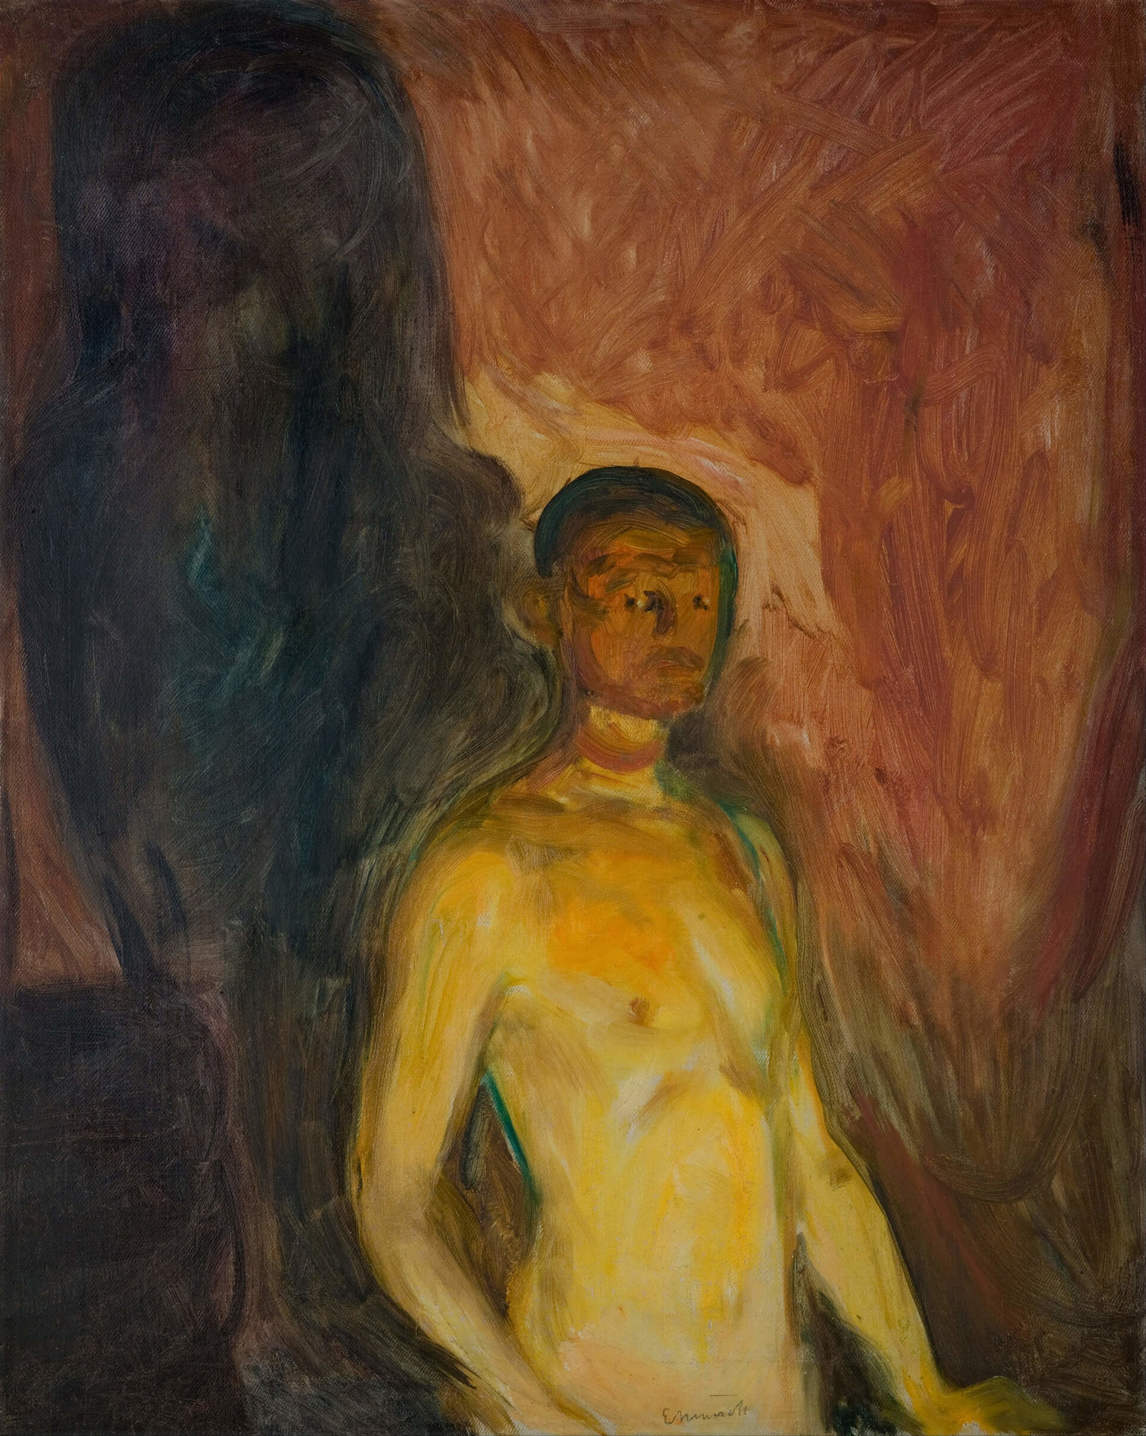 Art Canada Institute, Edvard Munch, Self-Portrait in Hell, 1903